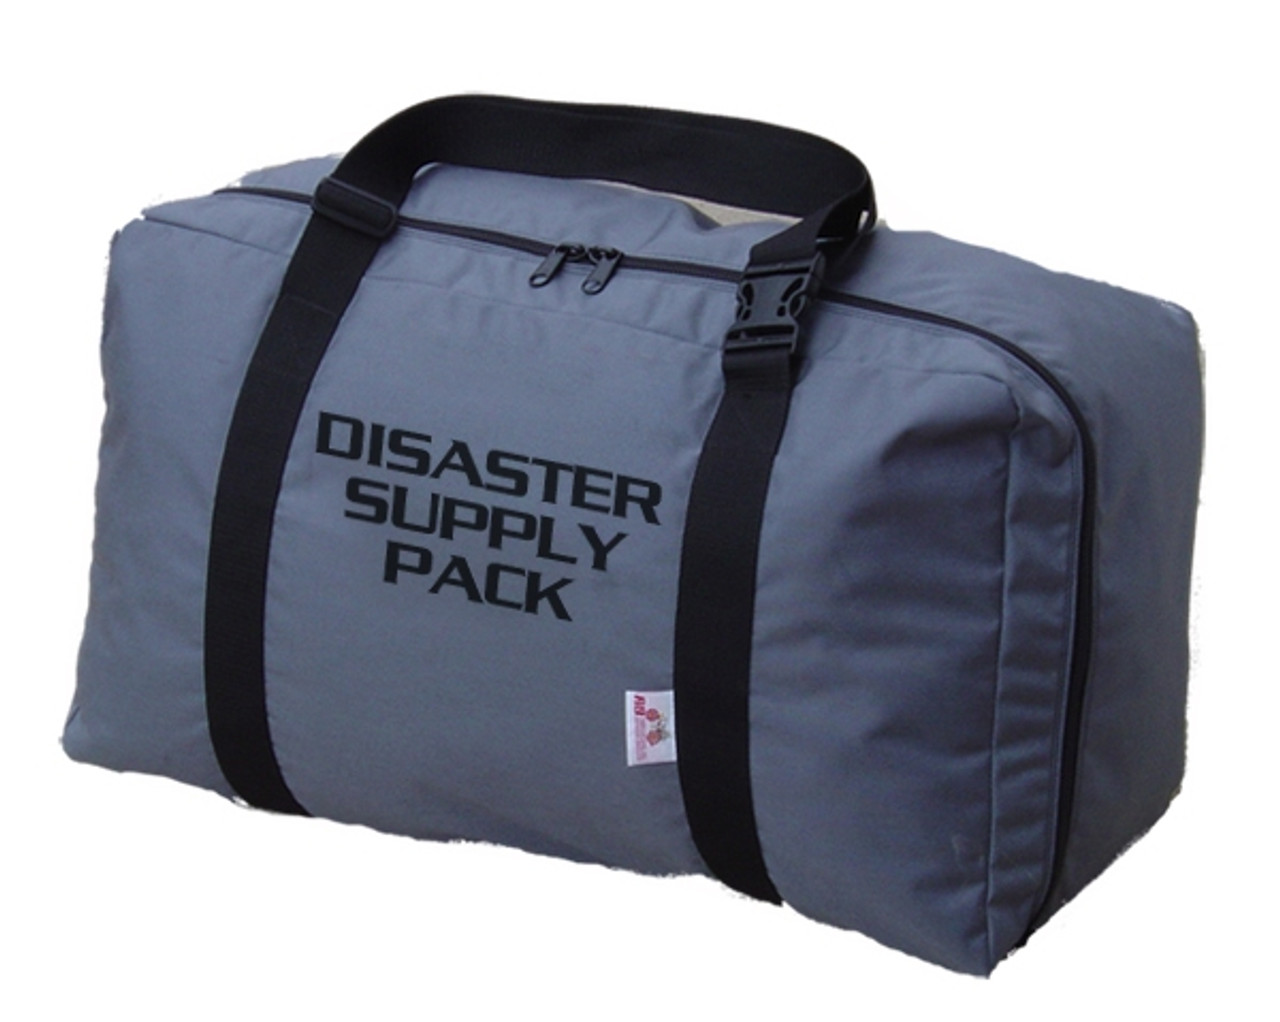 Stocked - Disaster Supply Pack